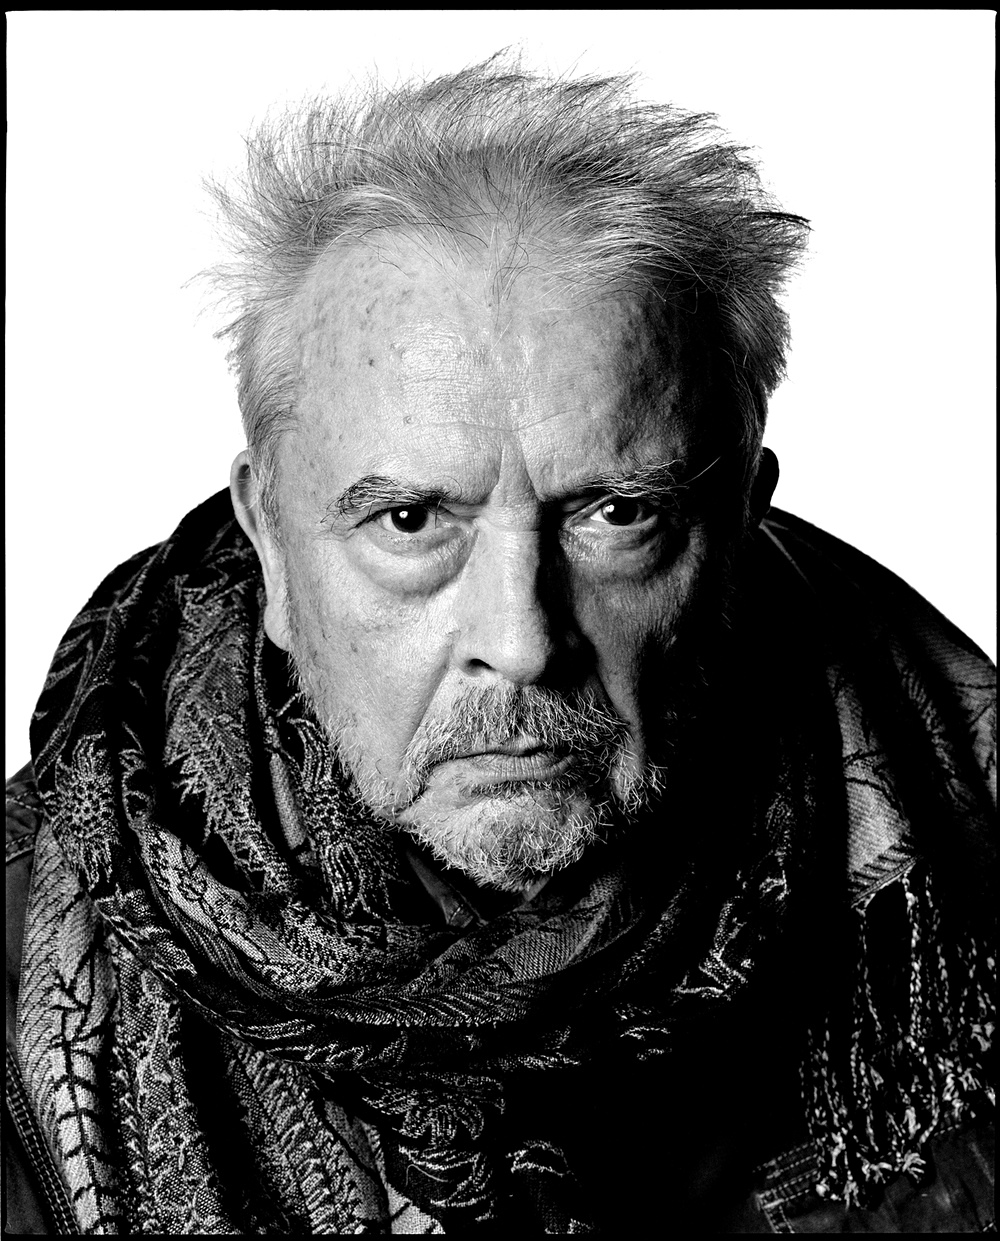 Click here to view full image. Photograph by <b>David Bailey</b> - David-Bailey-self-portrai-001